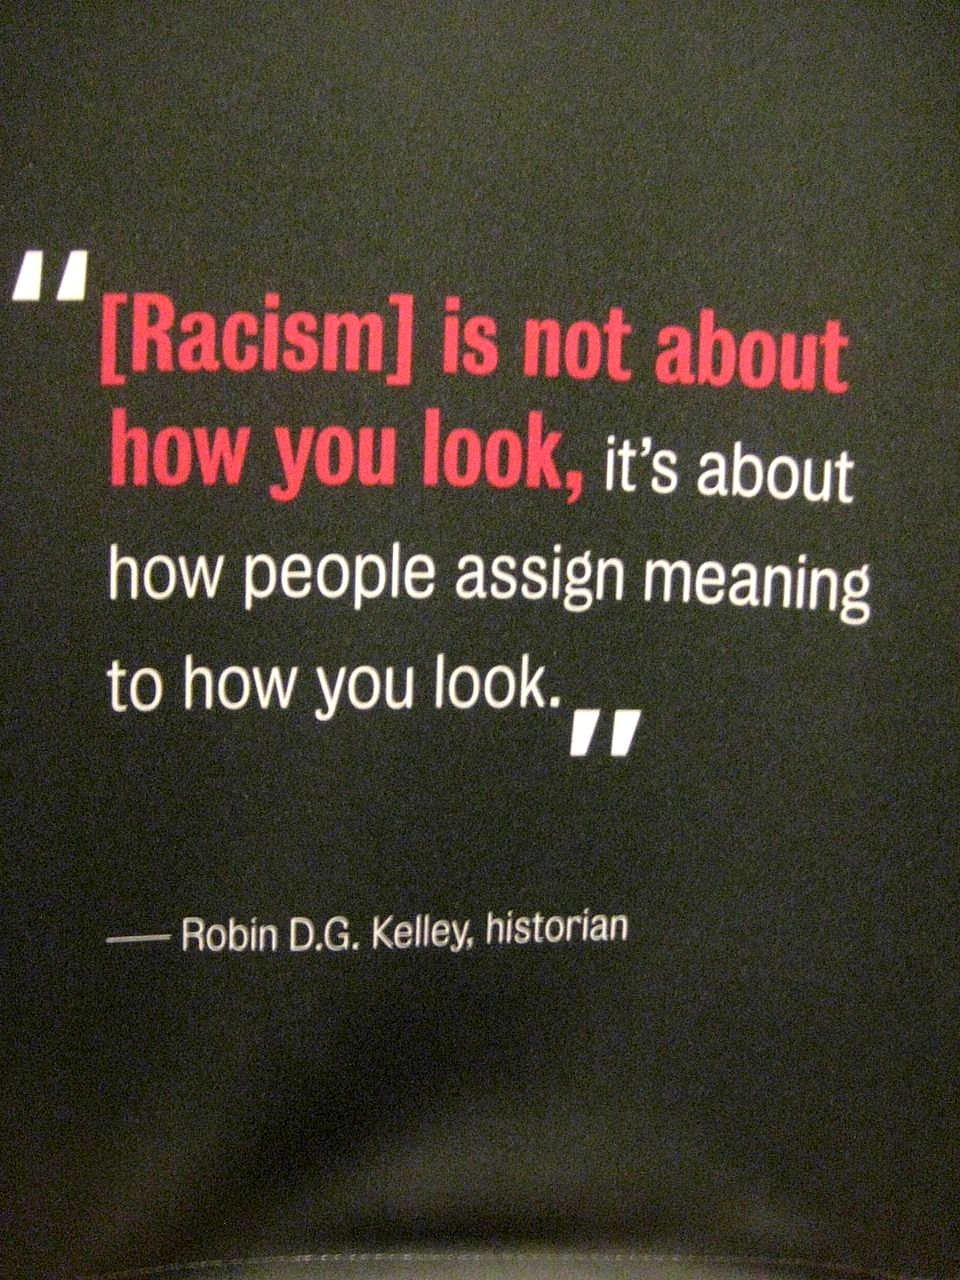 quote on racial inequality essays about love picture women s issues are society s issues photo quotes racism